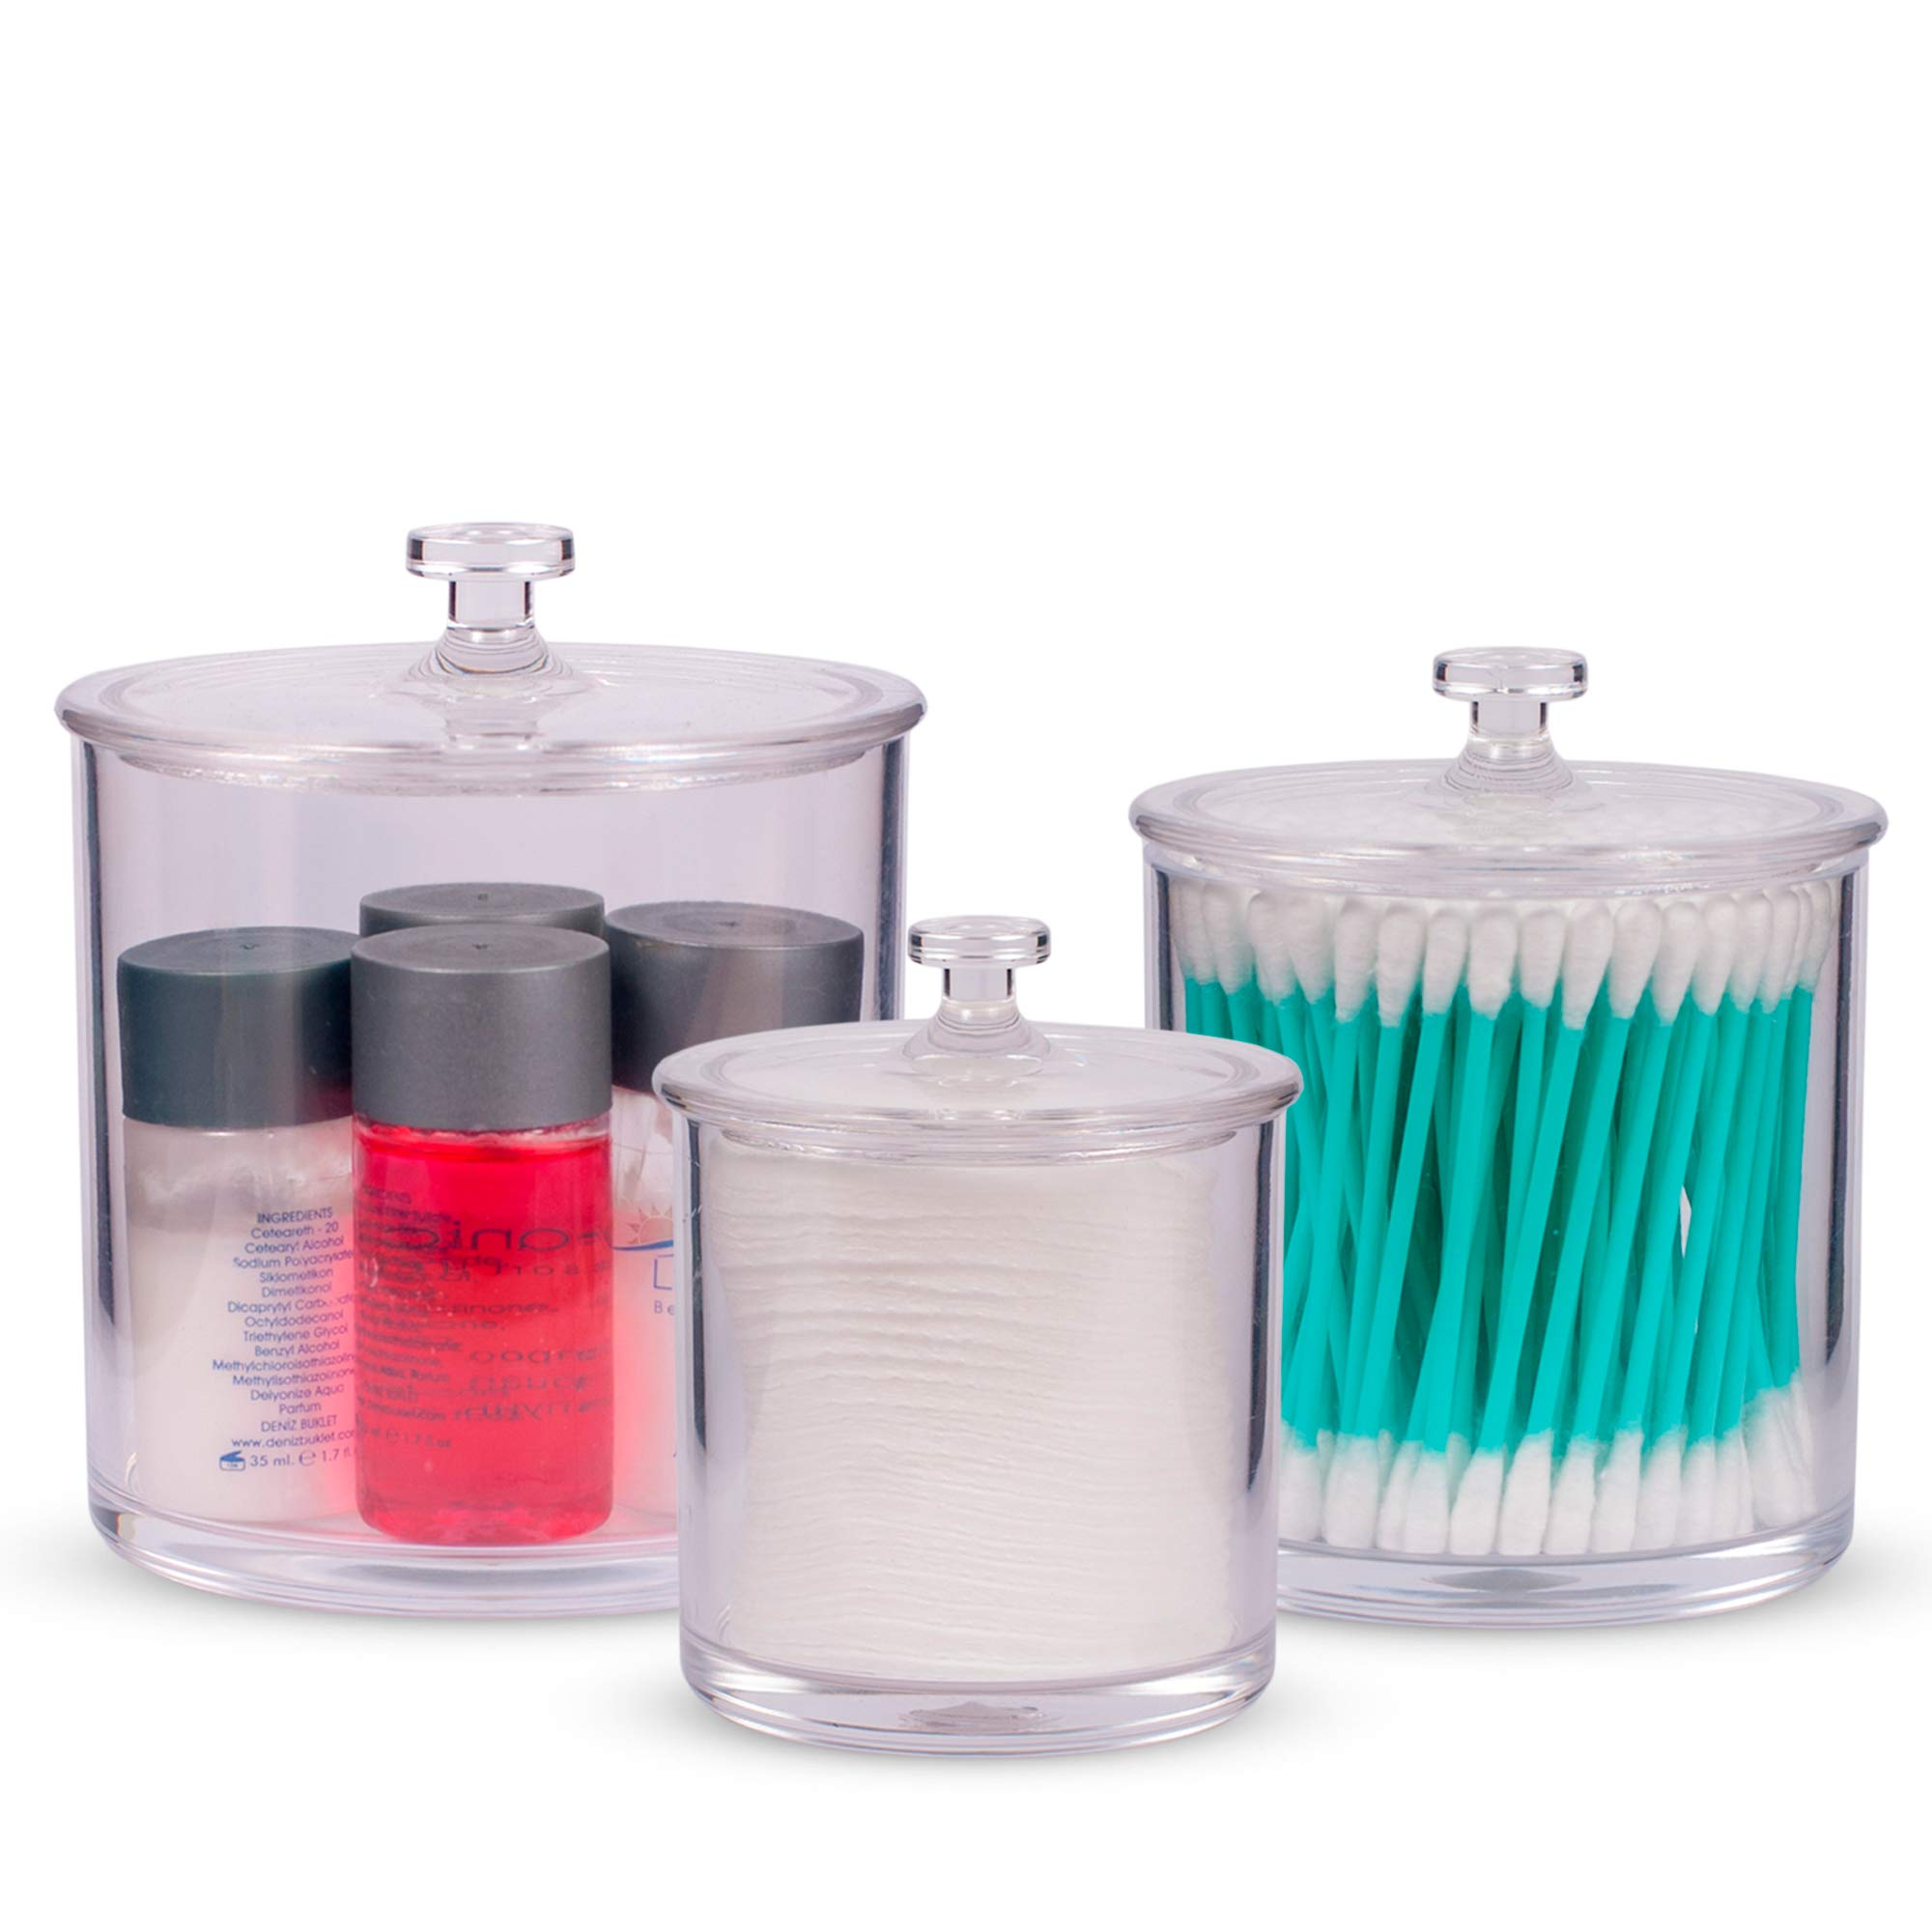 Superior Quality Plastic Apothecary Jars with Lids   Set of 3 by Luxe & Frill. Acrylic Bathroom Organizer, Crystal Clear Canister/Container Good for Q-tips and Candy Buffet